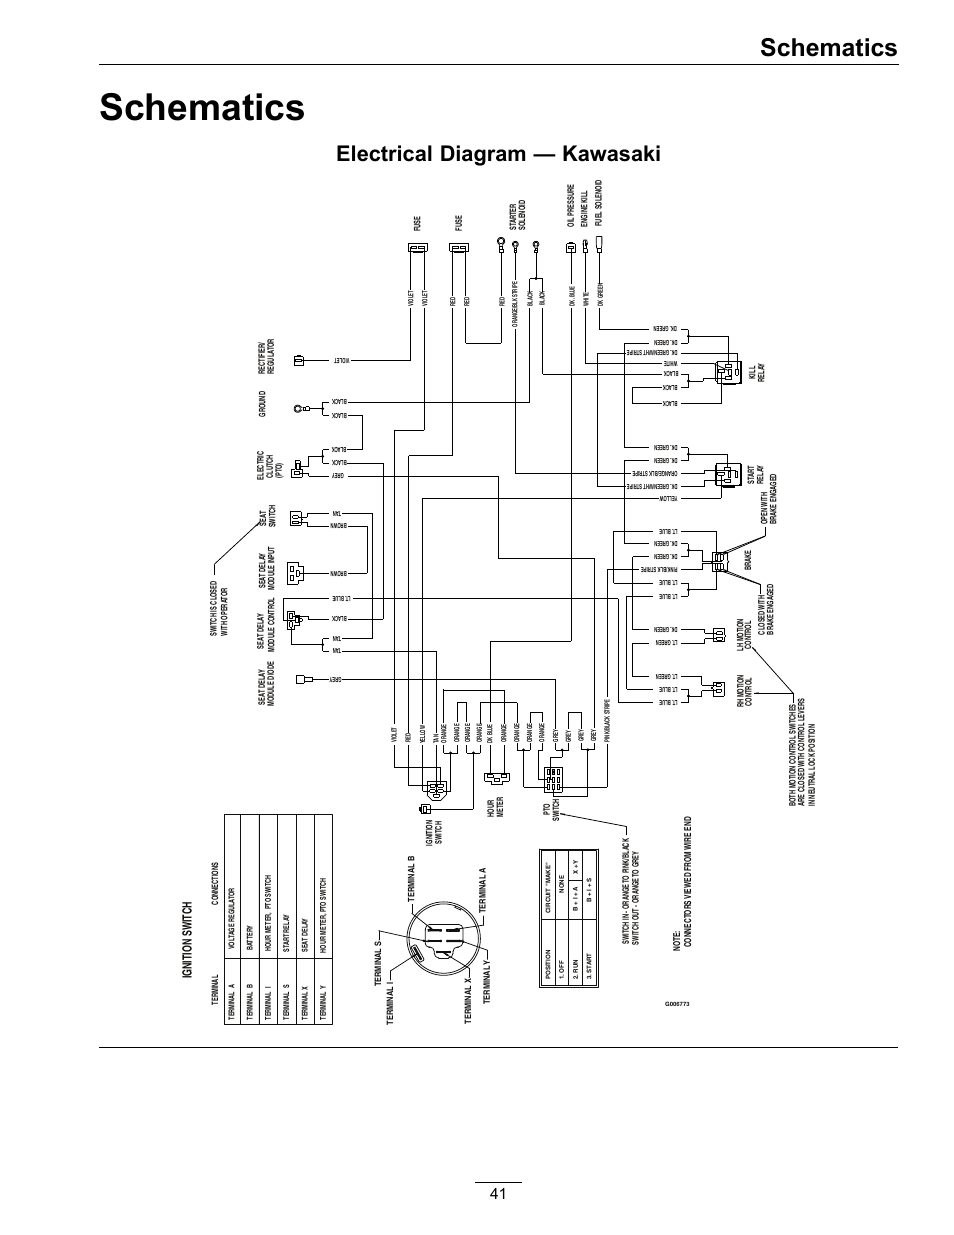 Schematics, Electrical diagram — kawasaki, Ignition switch ... on